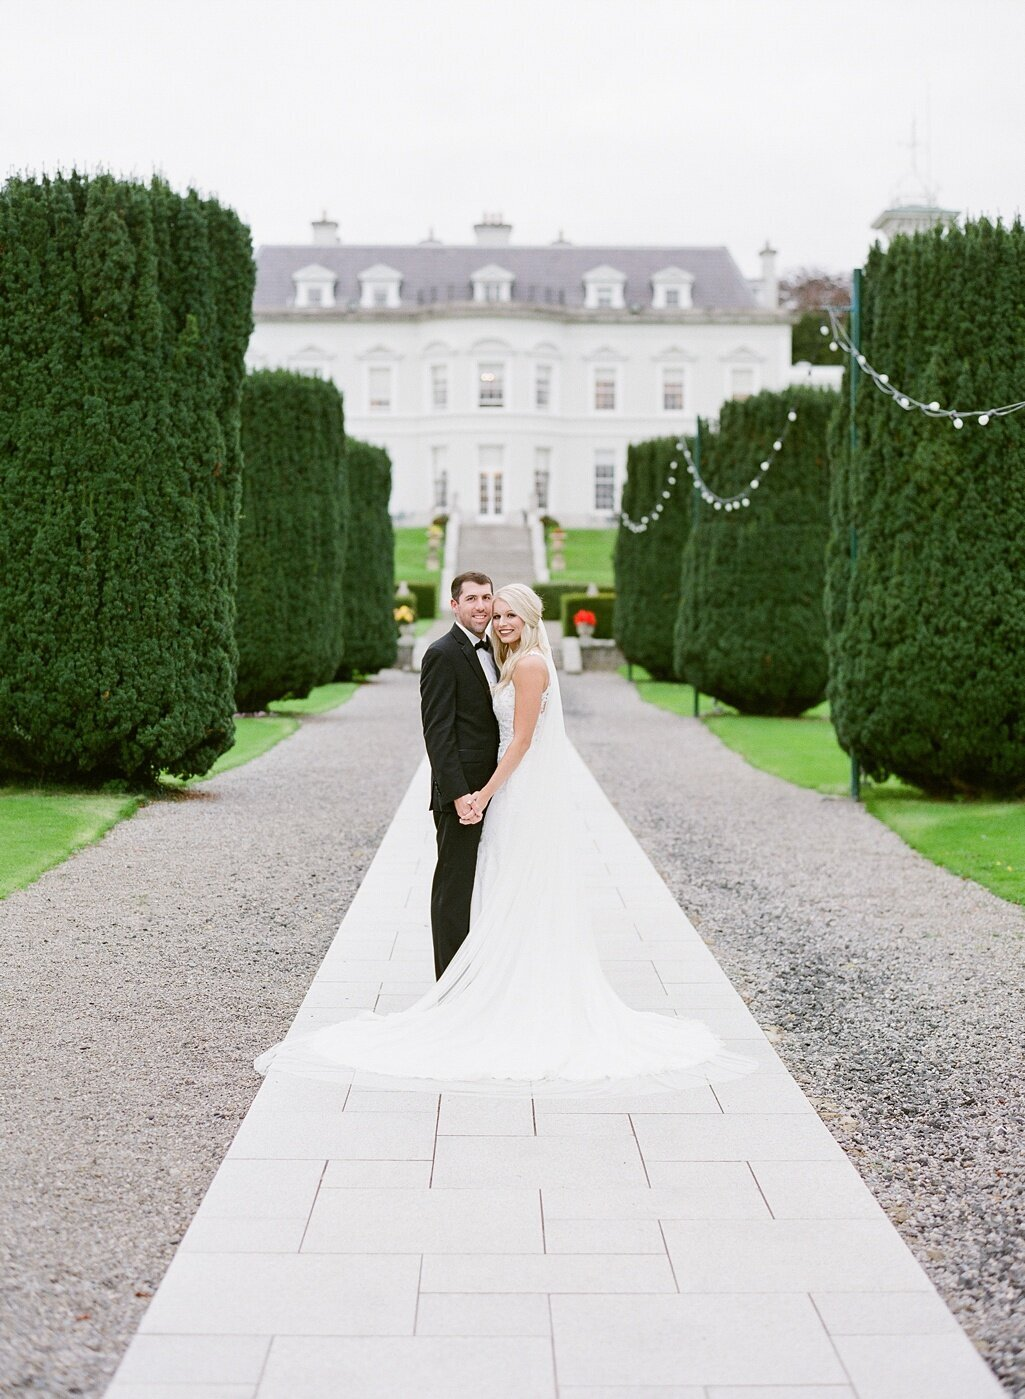 Jessie-Barksdale-Photography_K-Club-Ireland-Destination-Wedding-Photographer_0003